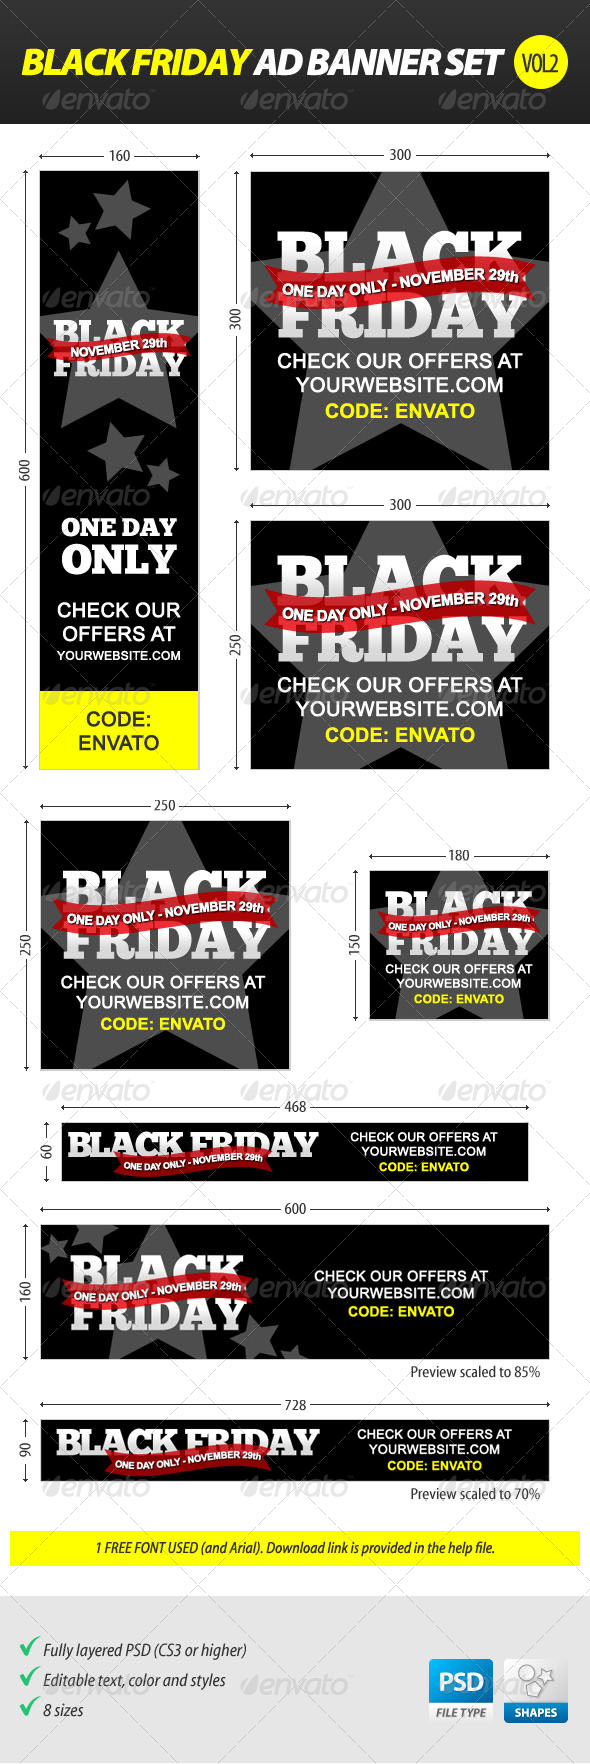 Black Friday Ad Banner Set vol.2 - Banners & Ads Web Elements